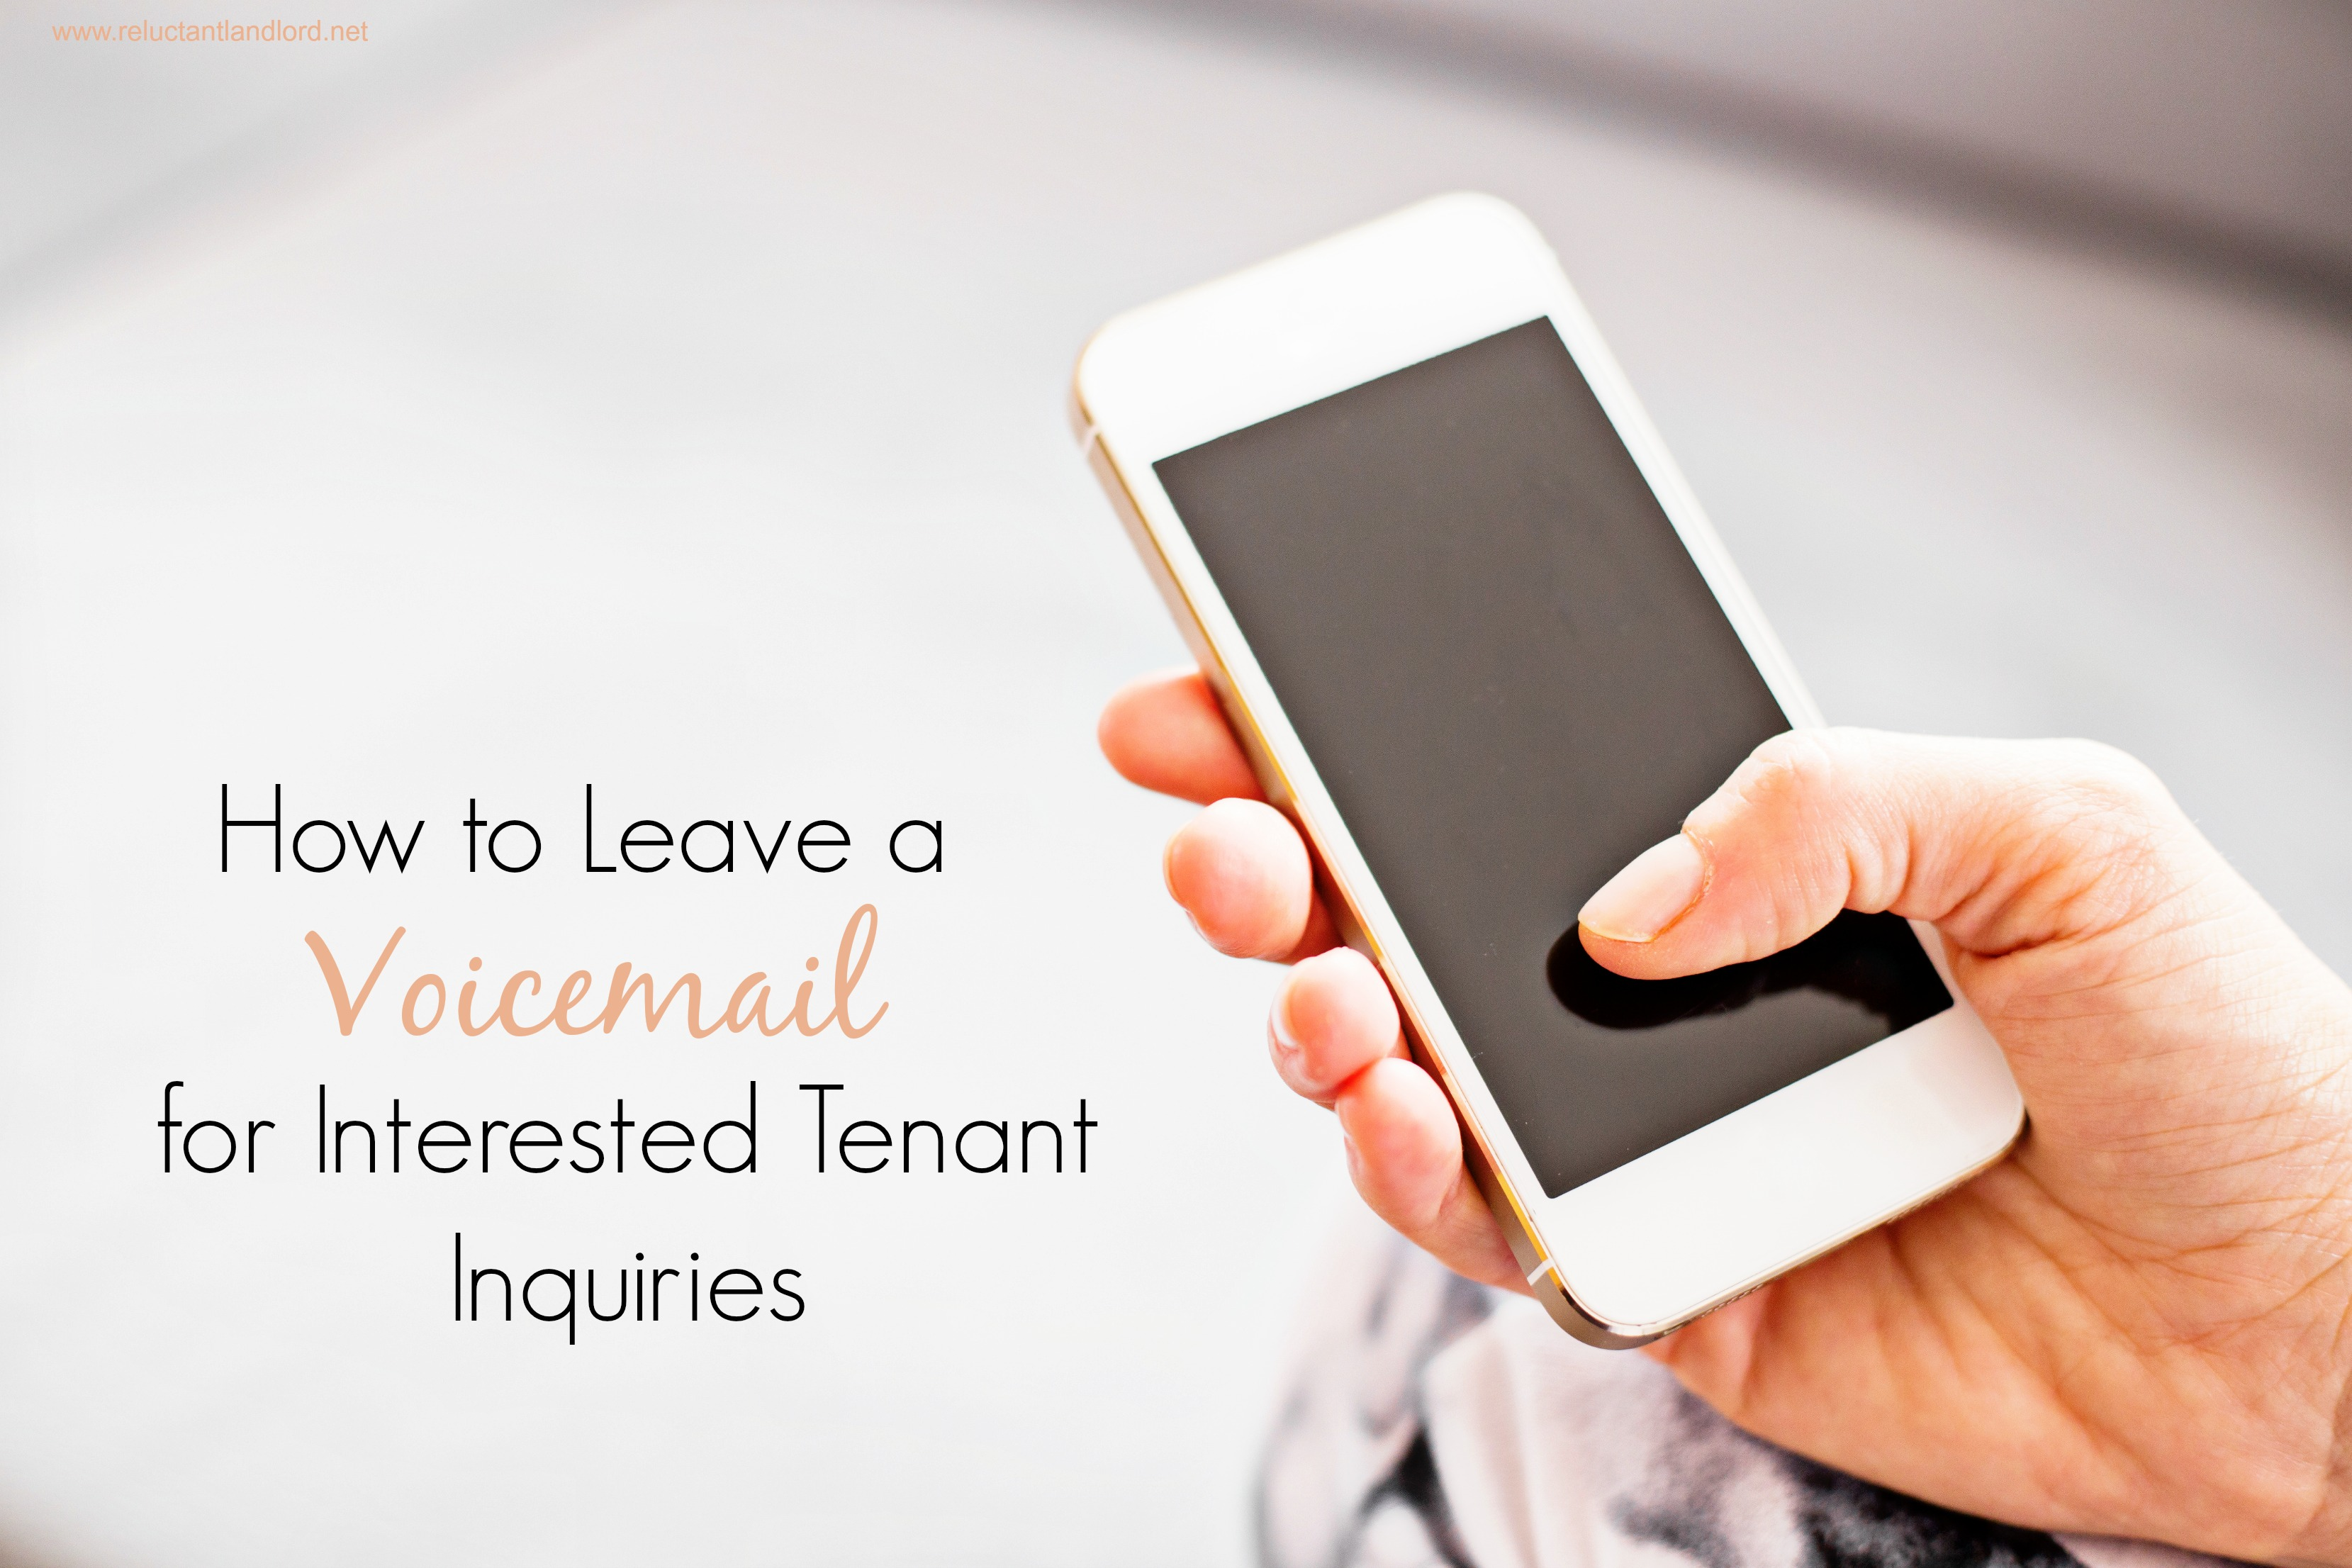 How To Leave A Voicemail For Interested Tenant Inquiries